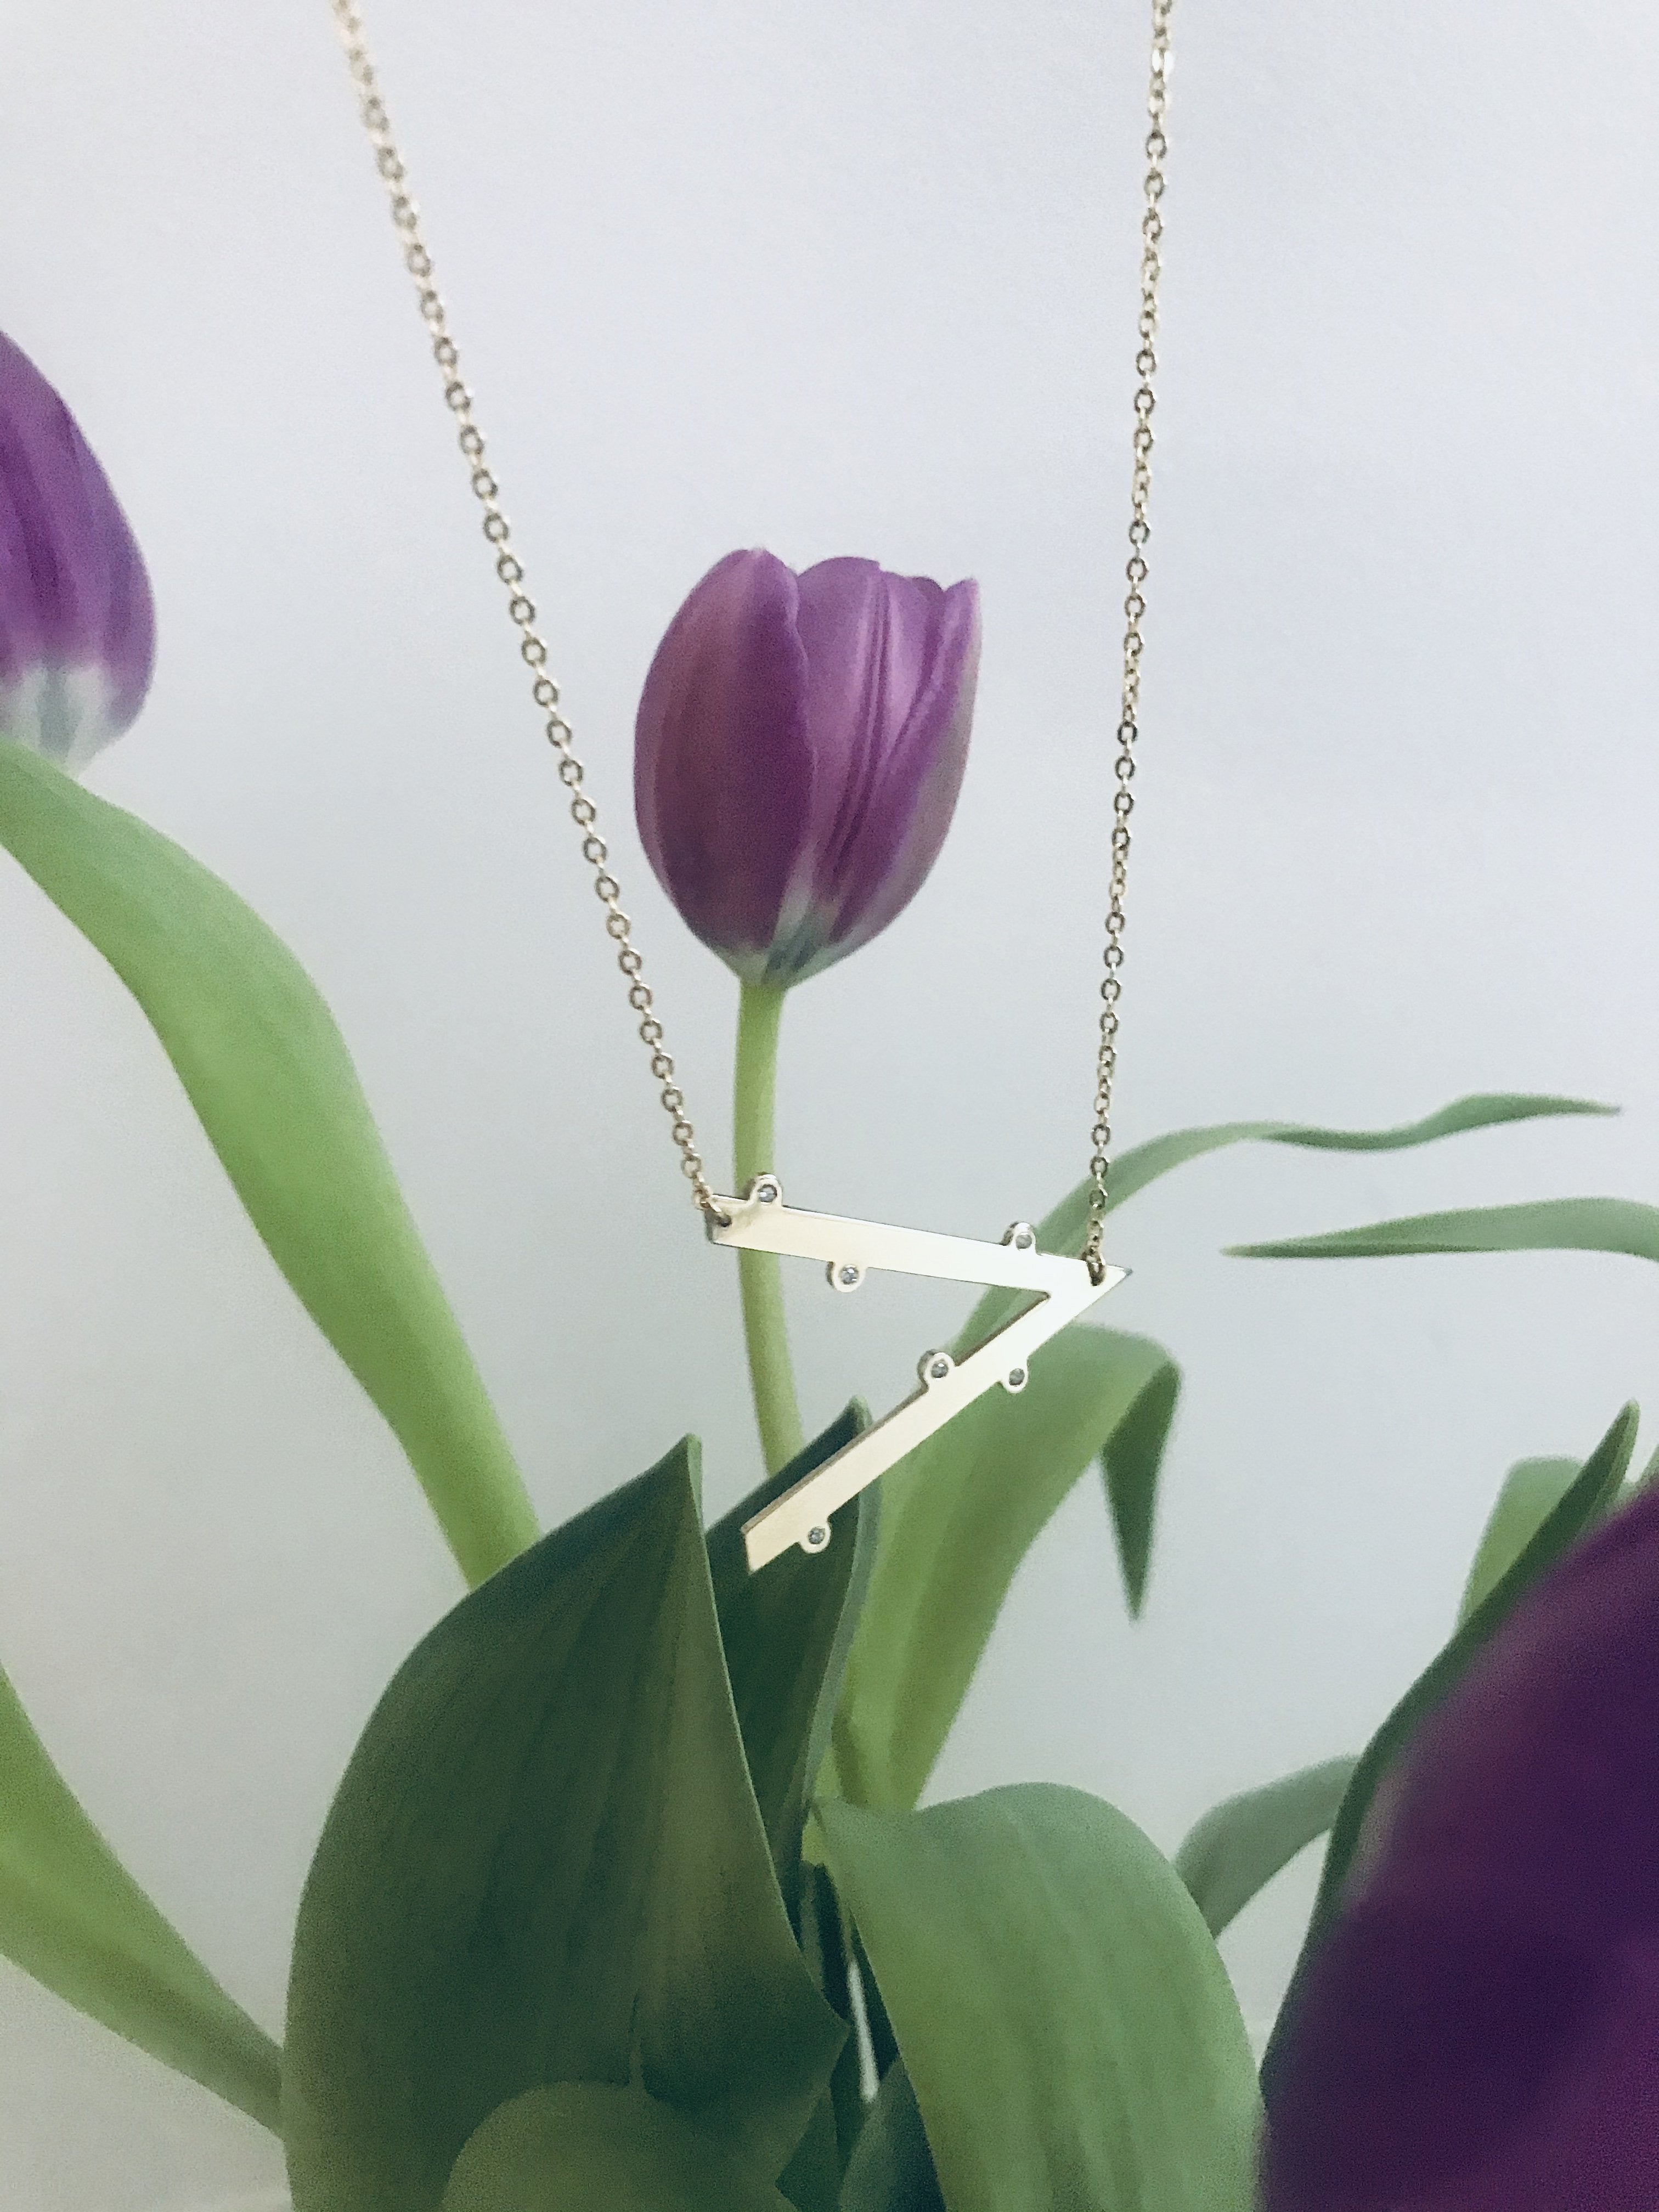 MY OVERSIZED INITIAL necklace - BYVELA designer jewellery in silver and gold